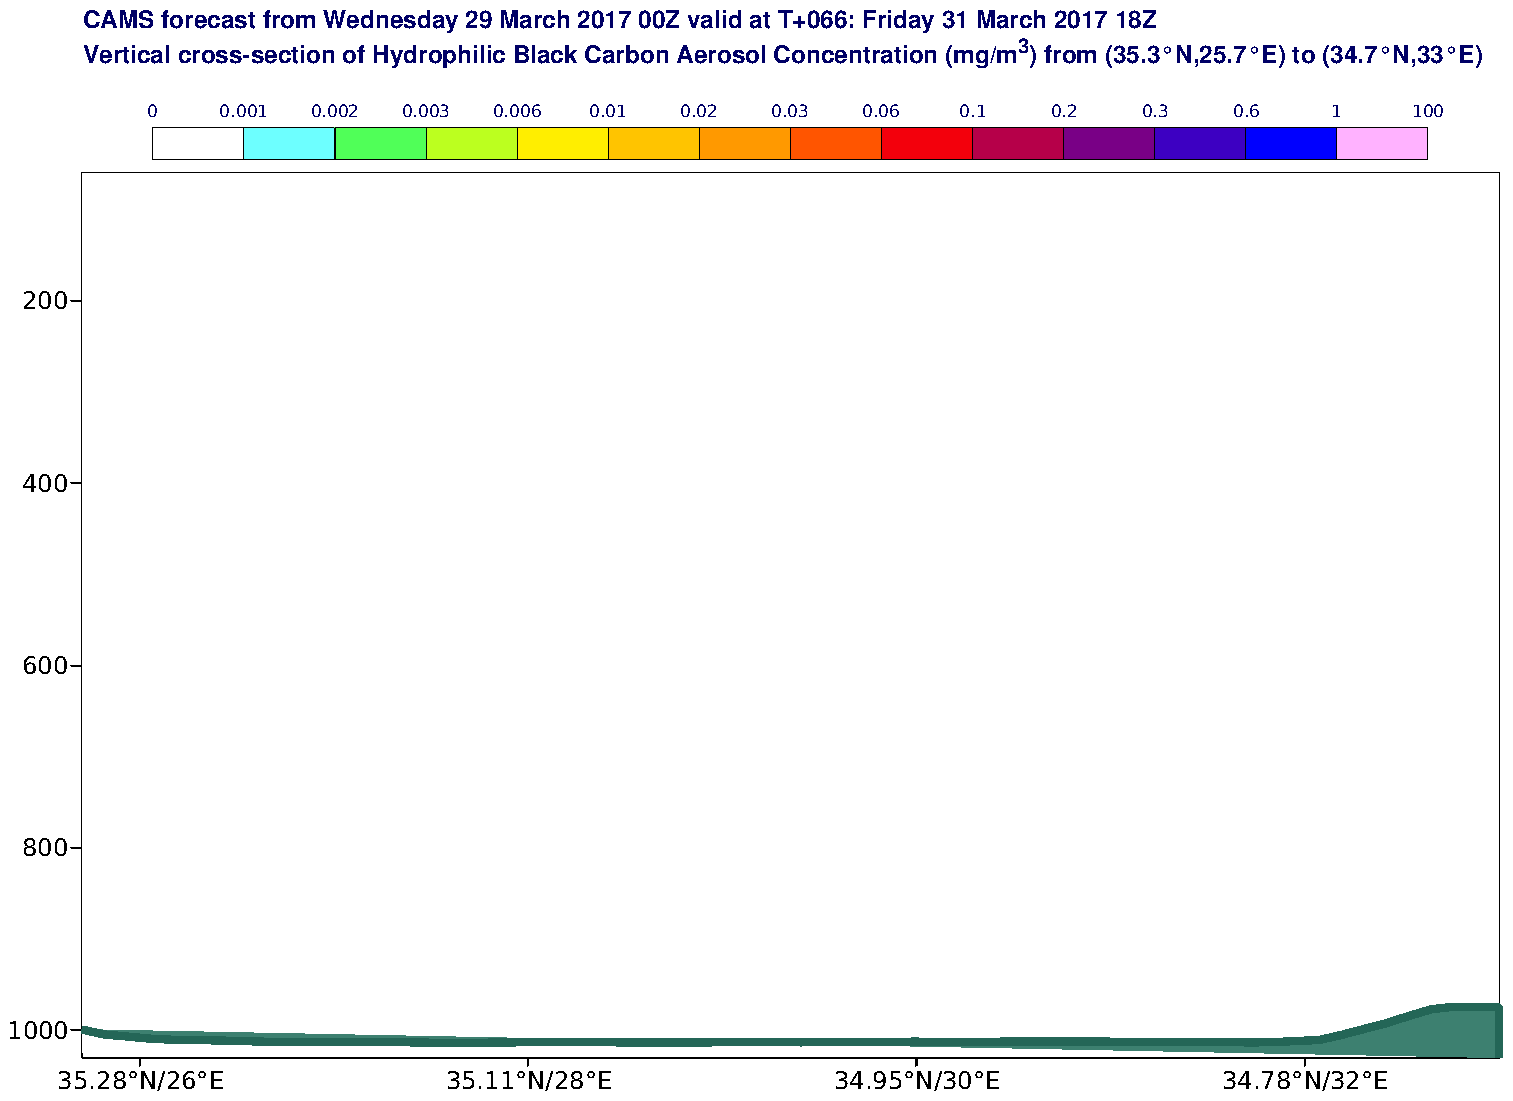 Vertical cross-section of Hydrophilic Black Carbon Aerosol Concentration (mg/m3) valid at T66 - 2017-03-31 18:00